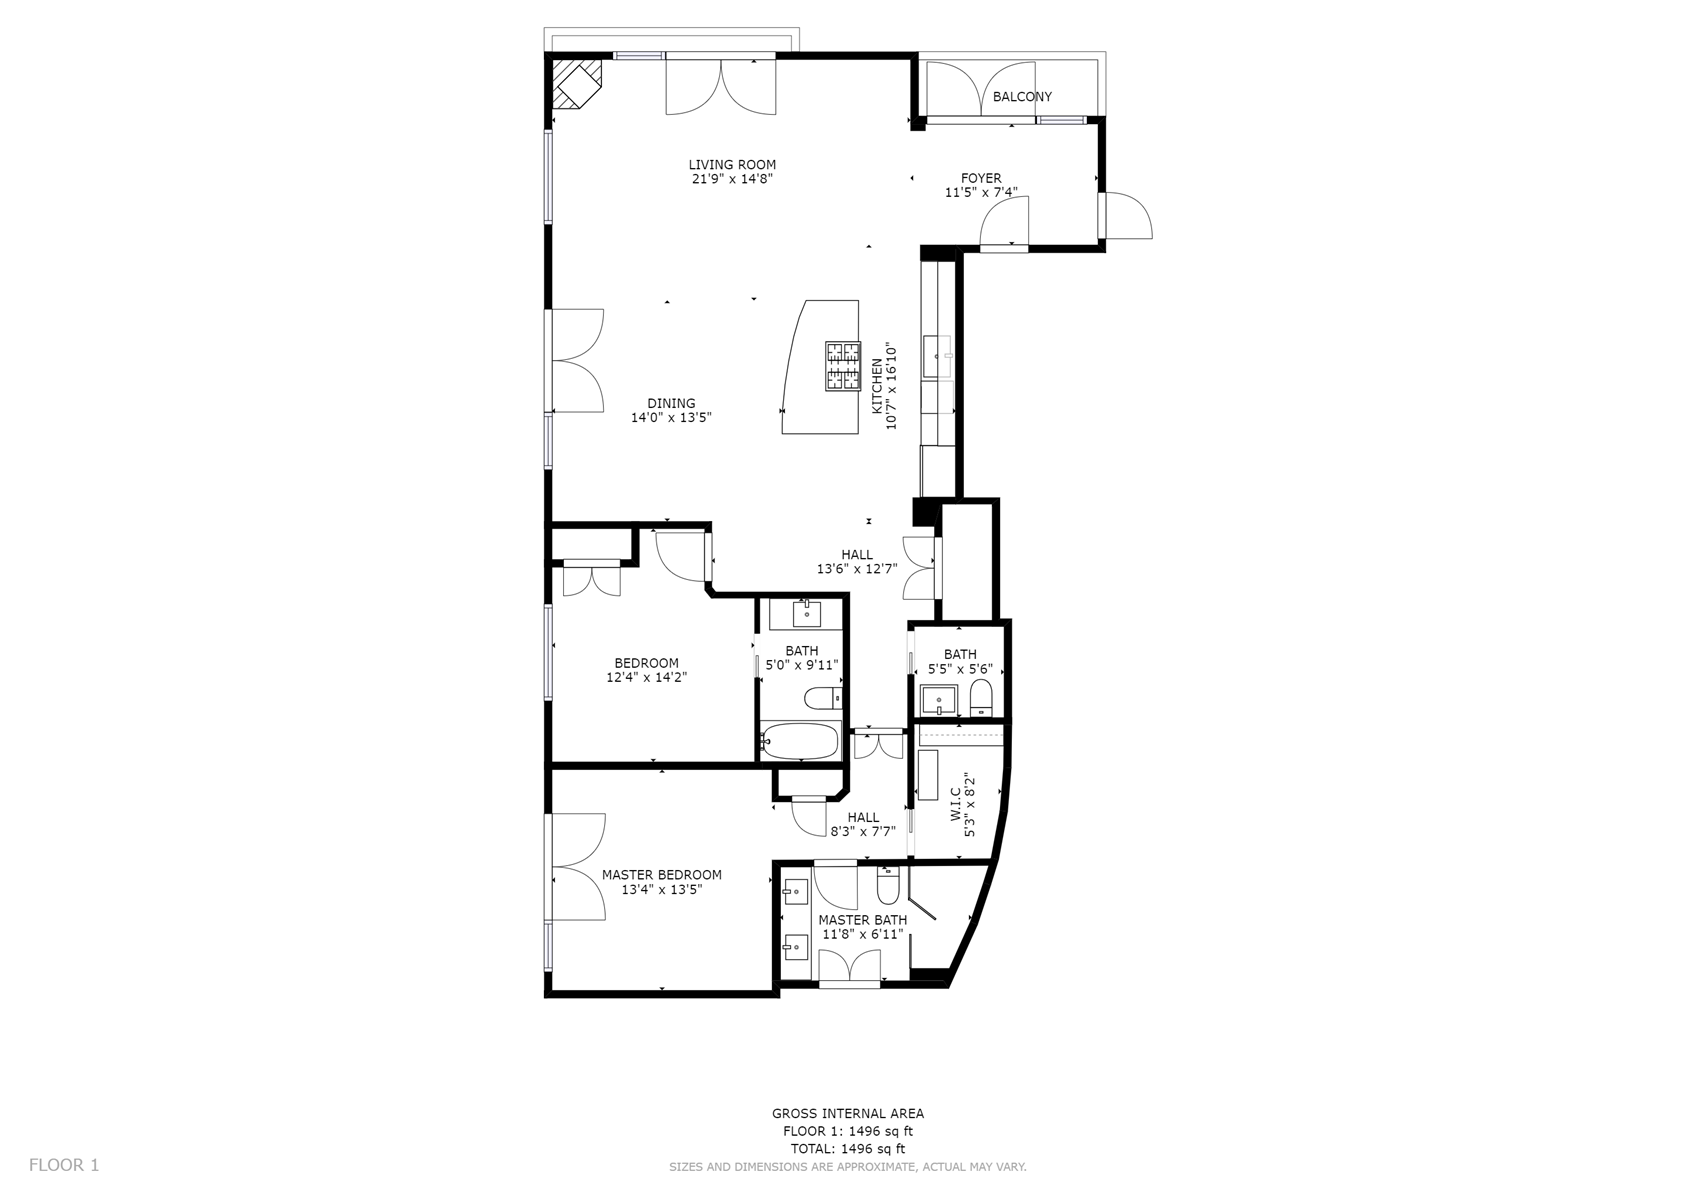 Floor Plan for The Lincoln 501, 2 Bed / 2.5 Bath, Luxury Condo (Fragrance/Allergen Free)